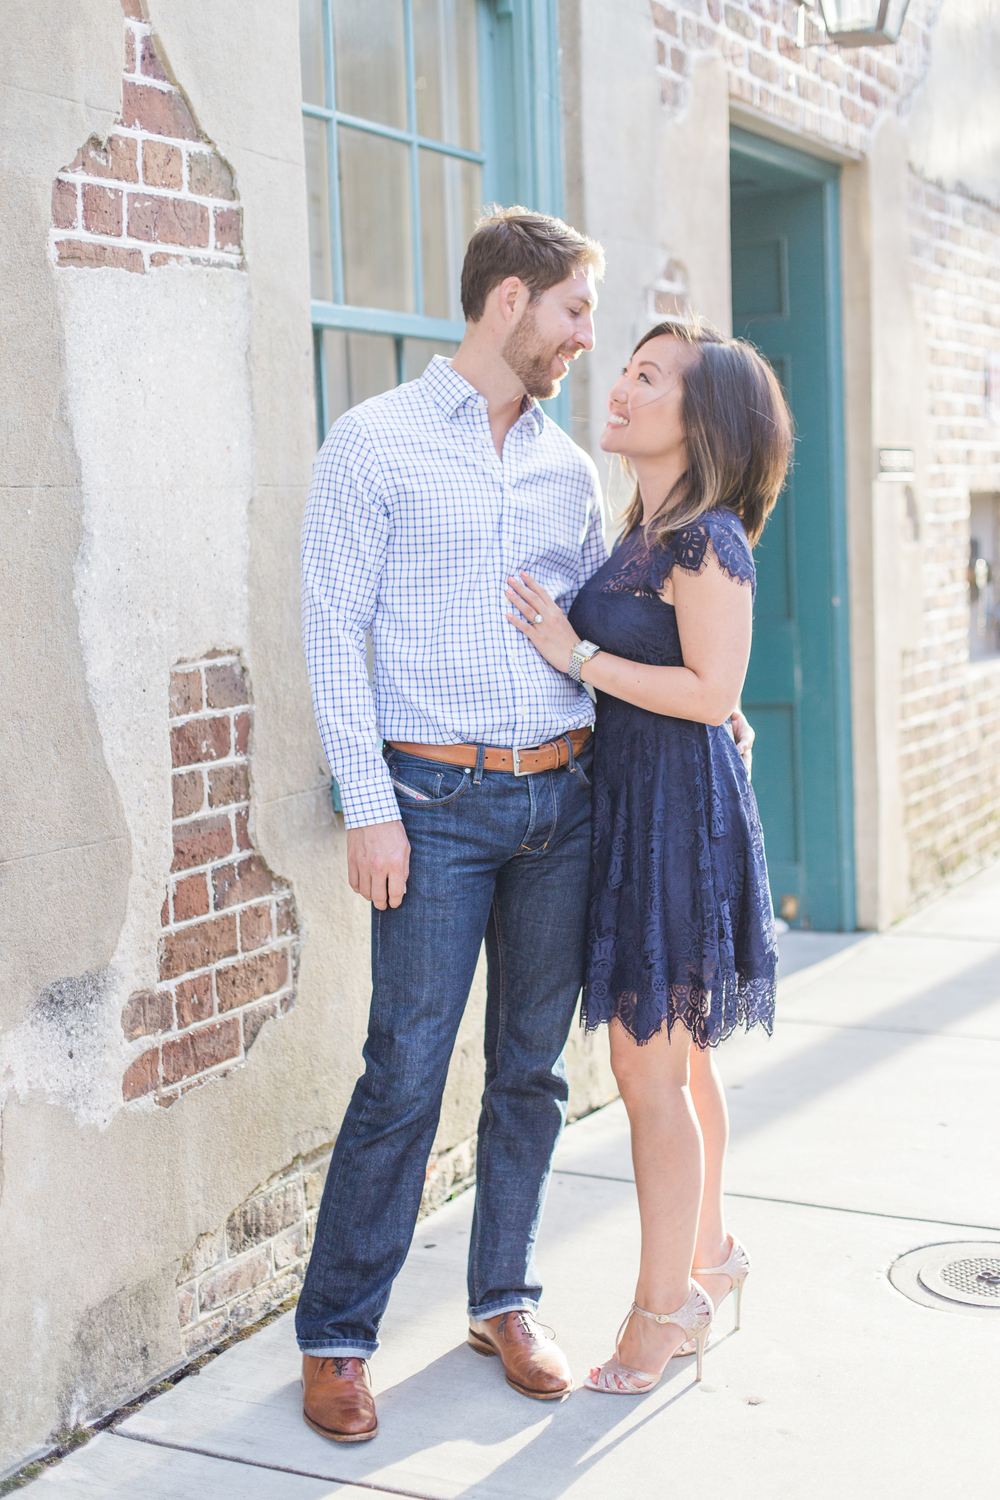 Mirrormirror-muah-engagment-airbrush-makeup-charleston-hair-the-click-chick-photography-60.jpg